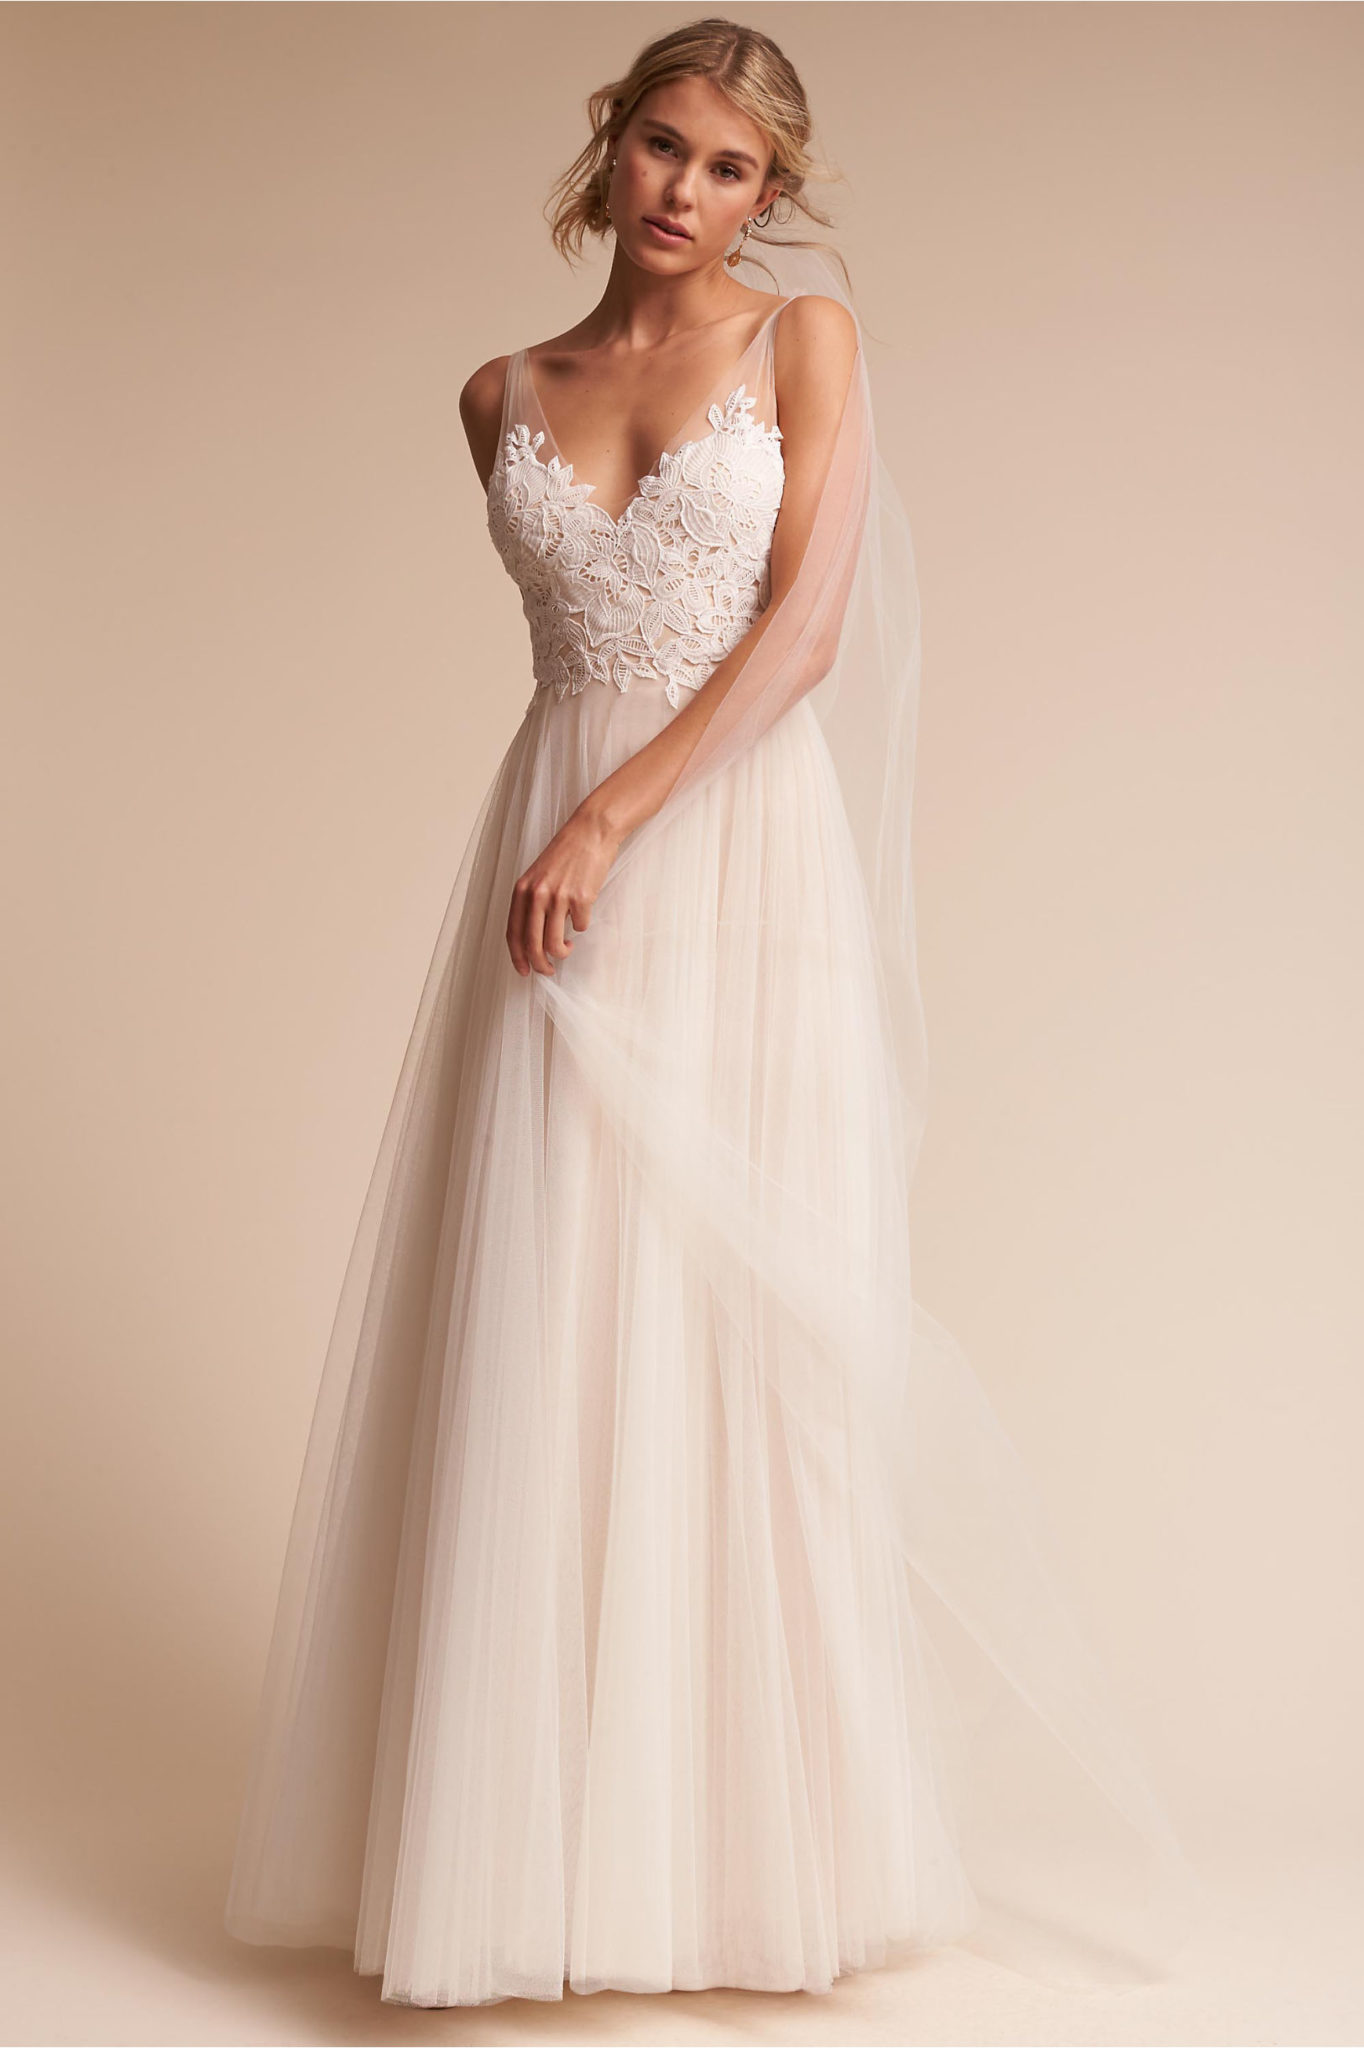 2 BHLDN Wedding Gowns